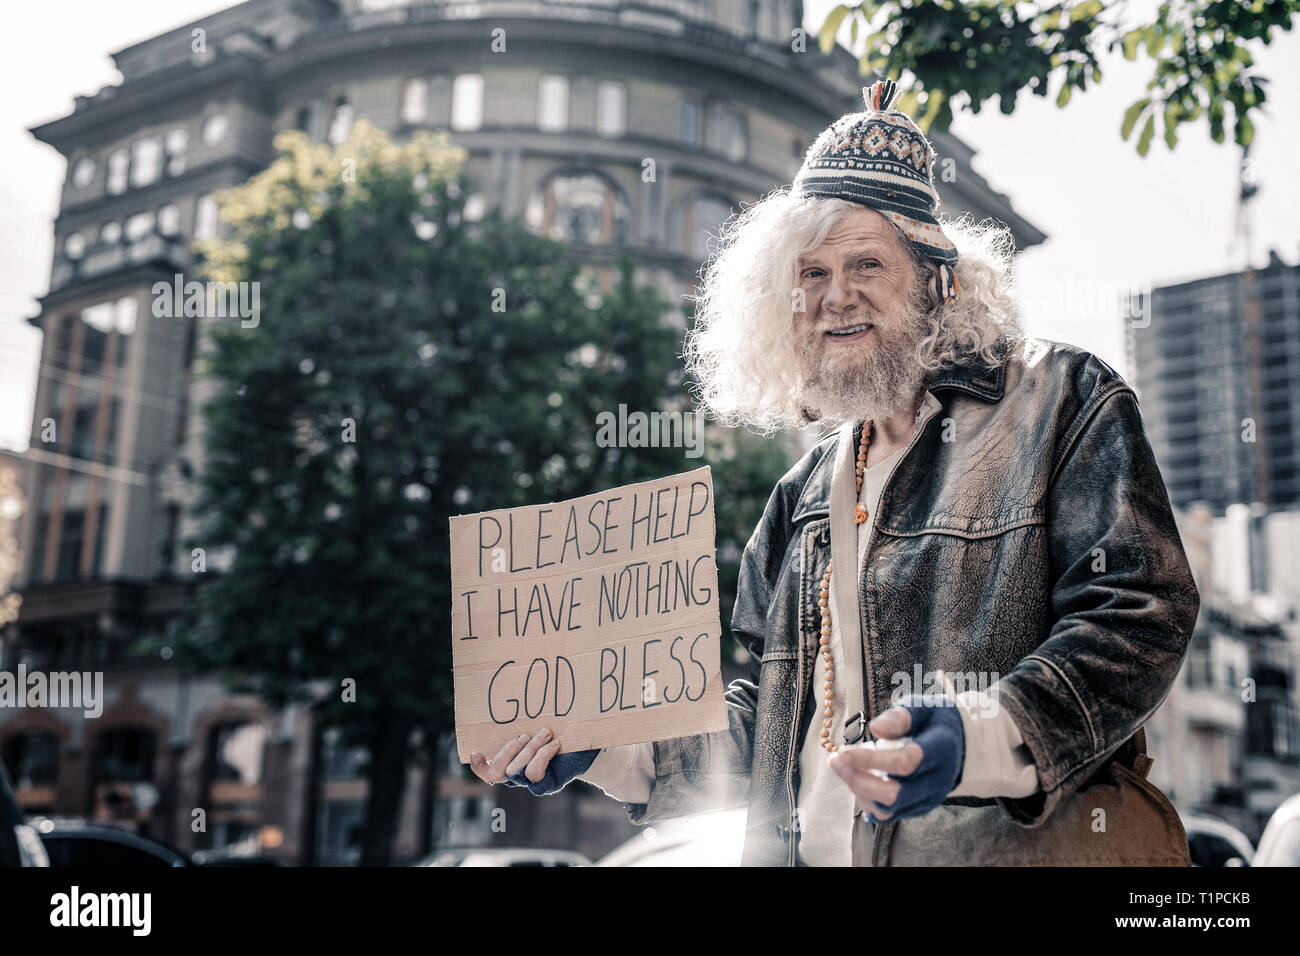 Confused senior homeless man being dirty and washed - Stock Image